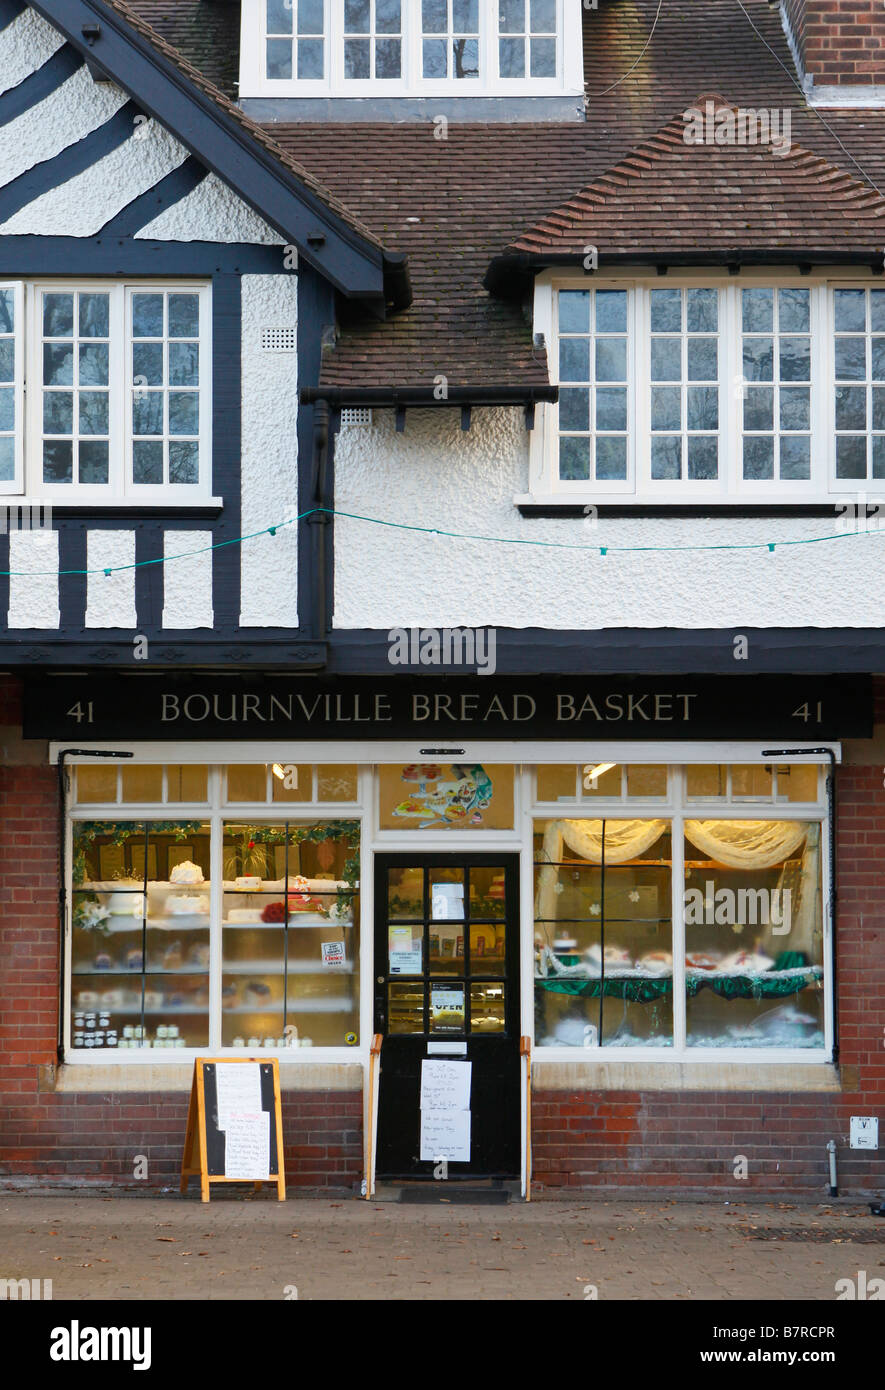 The timber framed shops in Bournville Birmingham West Midlands England - Stock Image